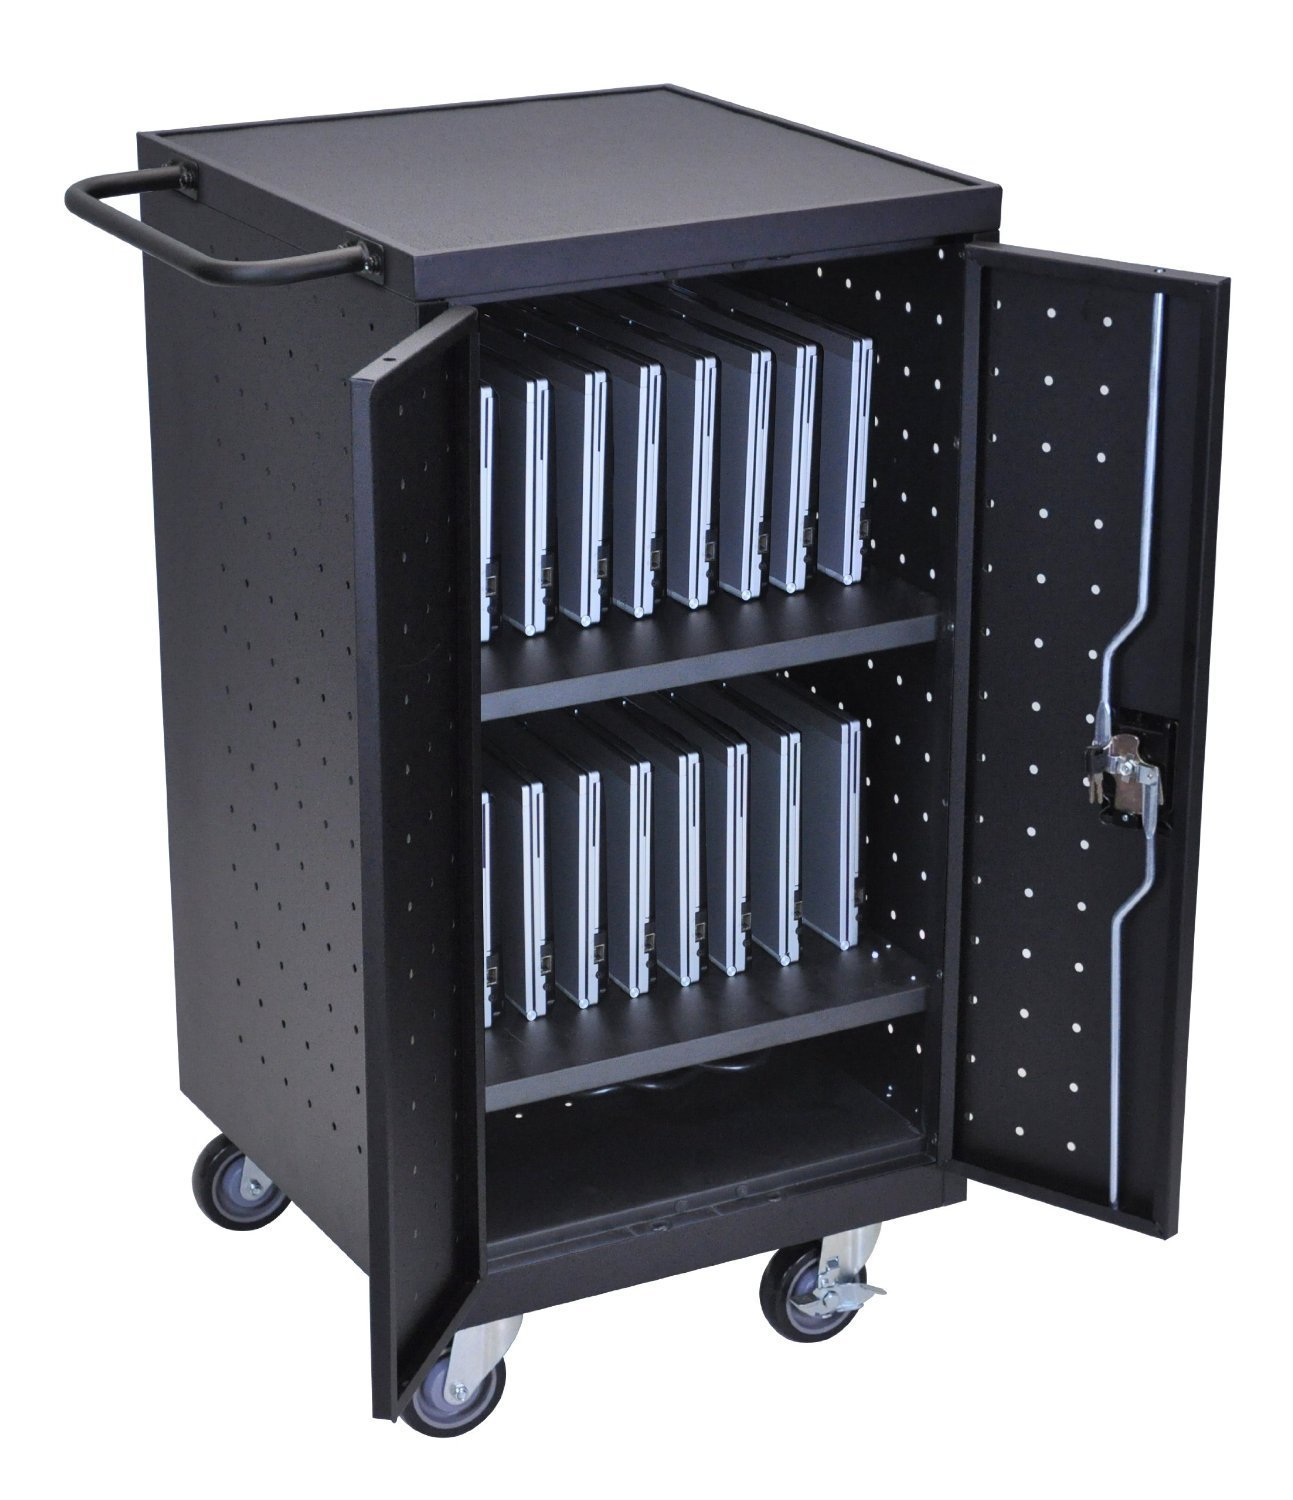 LUXOR LLTP18-B Laptop Computer Charging Cart 18  Black Amazon.com Industrial u0026 Scientific  sc 1 st  Amazon.com : computer storage cart  - Aquiesqueretaro.Com